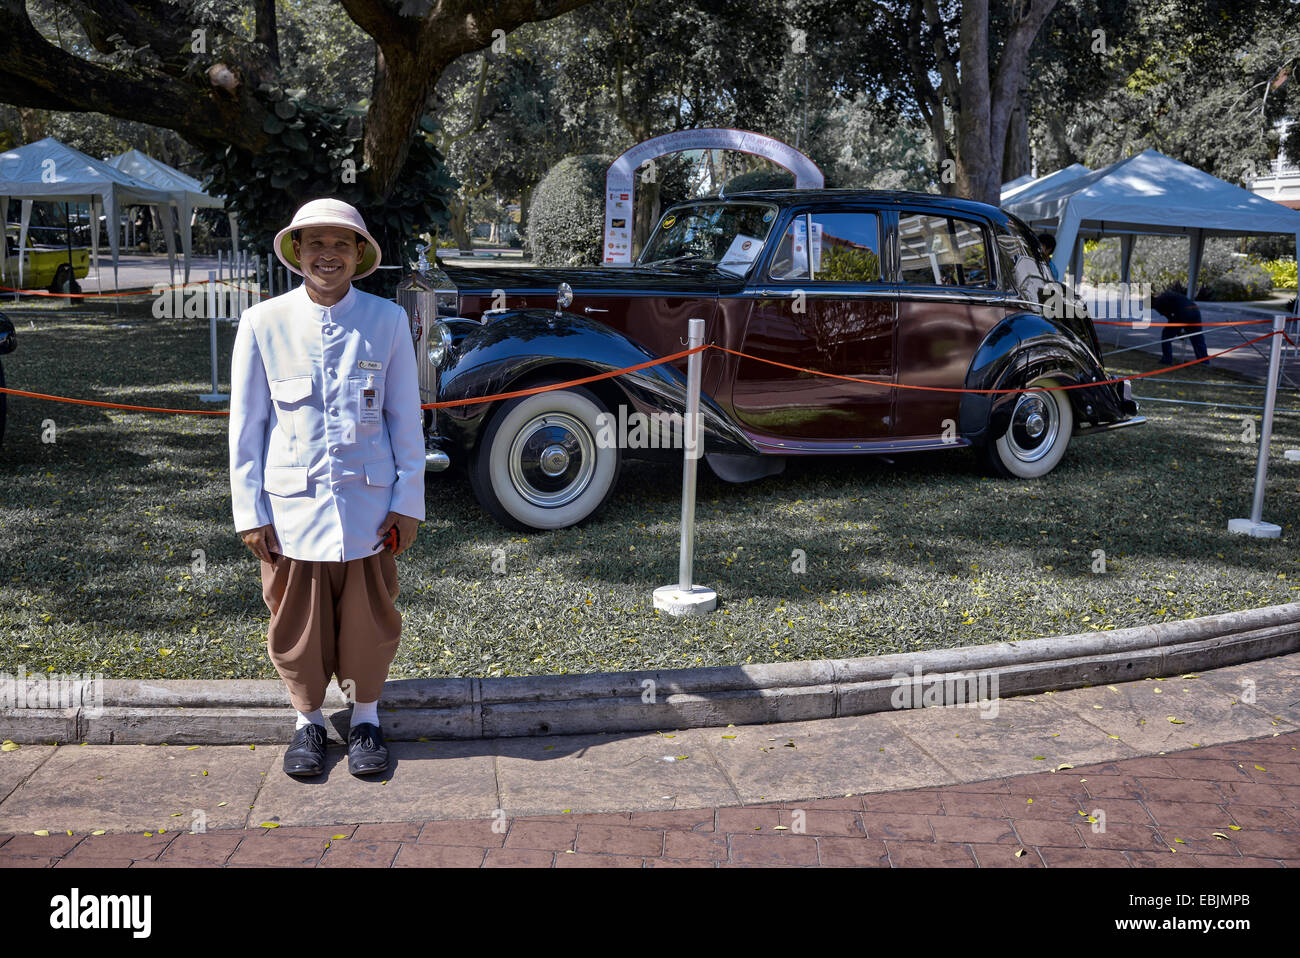 Hotel bell boy against a Rolls Royce Silver Dawn limousine. 1951 Classic British executive motorcar - Stock Image